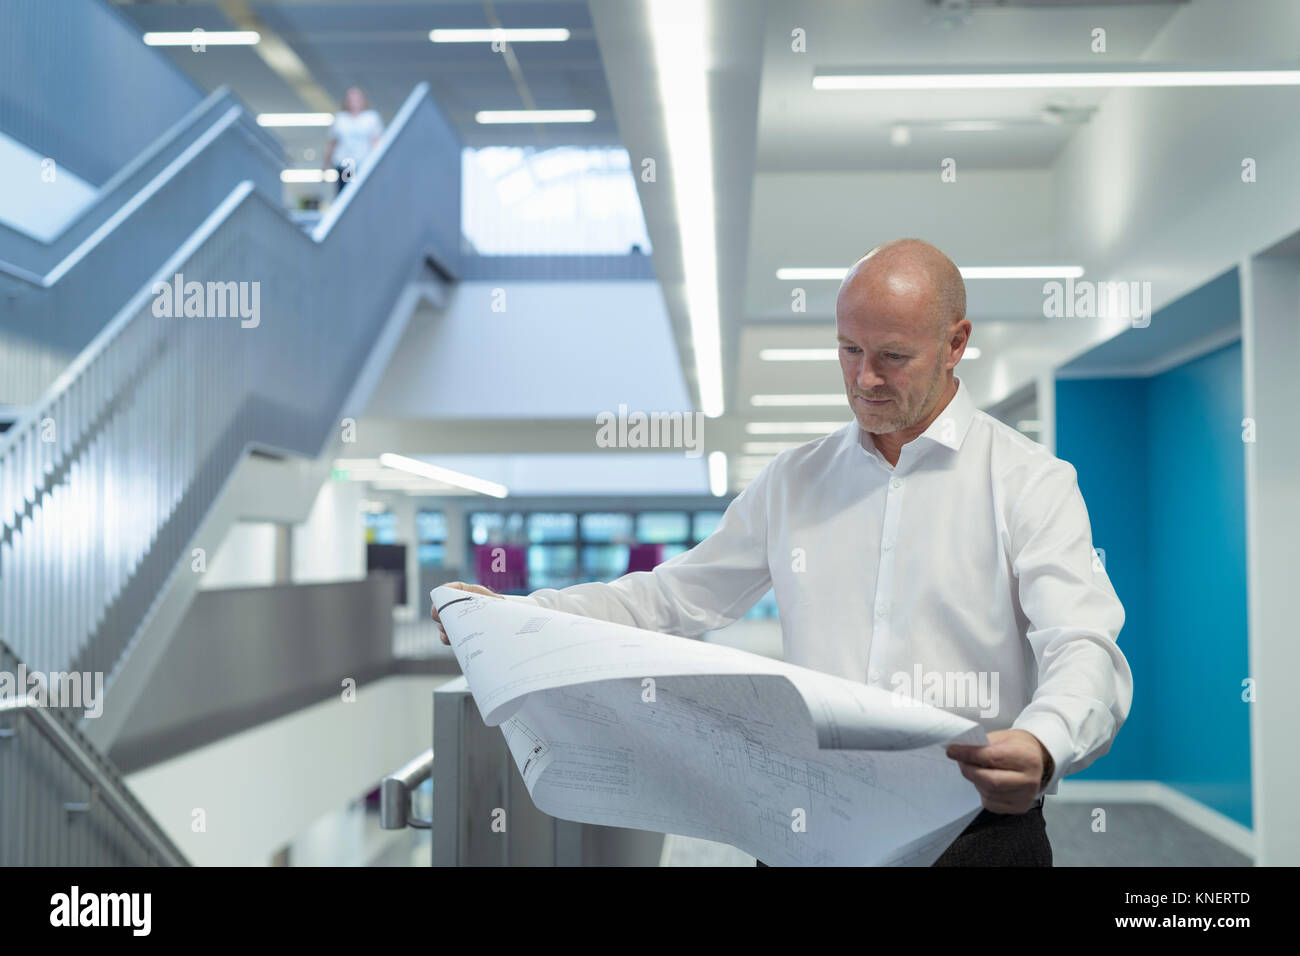 Engineer studying technical drawings in railway engineering facility - Stock Image